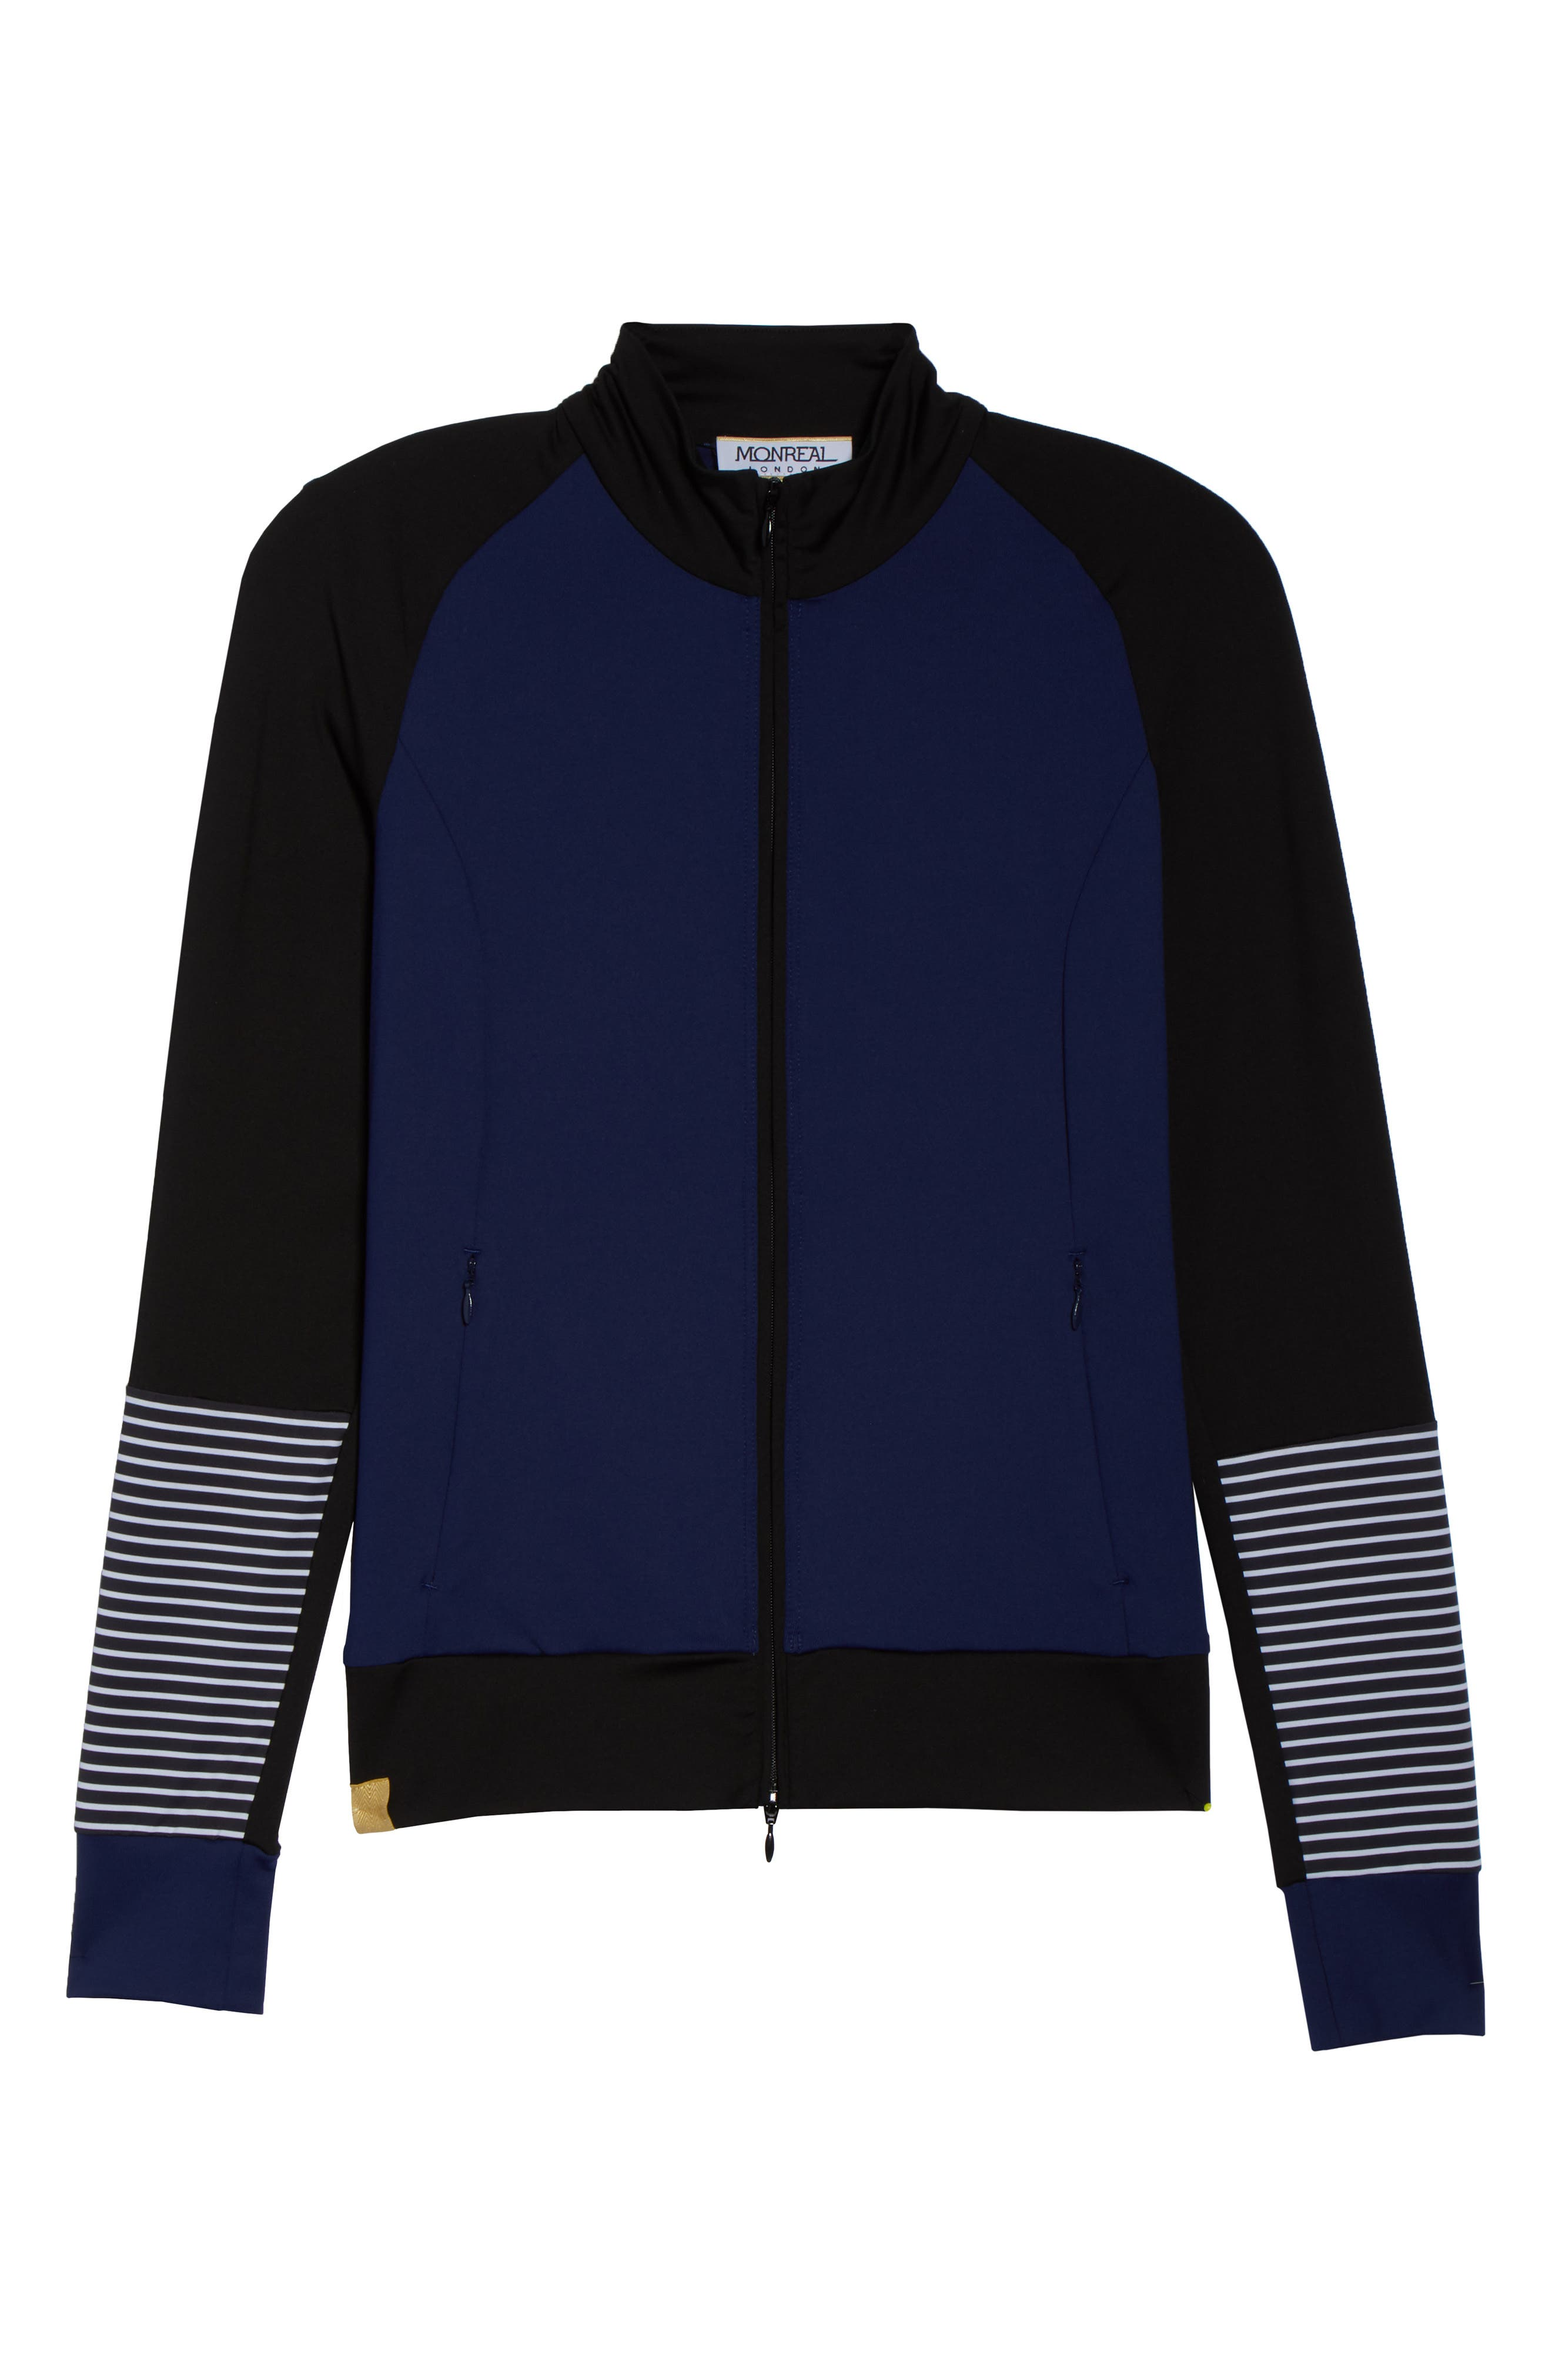 Featherweight Jacket,                             Alternate thumbnail 8, color,                             Indigo/ Stripe Print